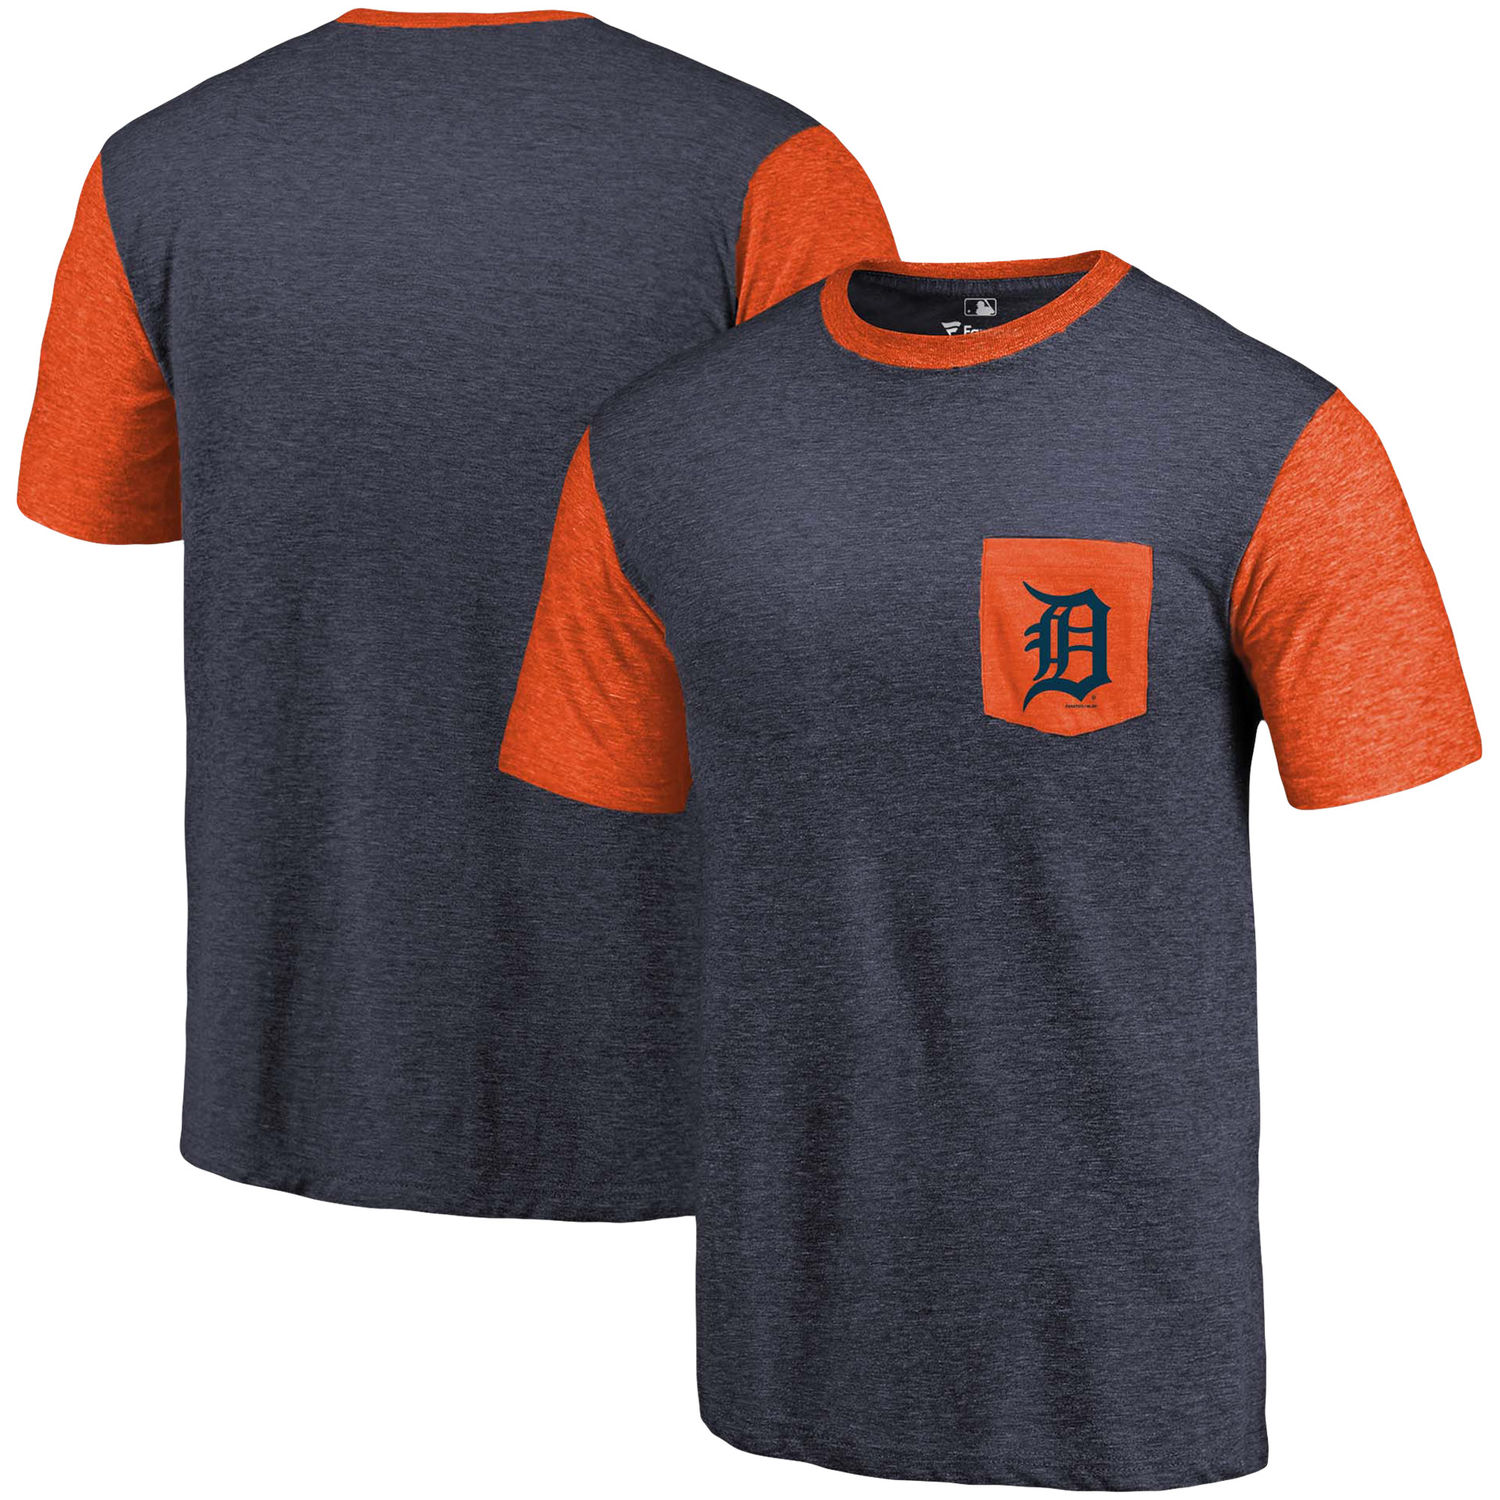 Men's Detroit Tigers Fanatics Branded Navy-Orange Refresh Pocket T-Shirt